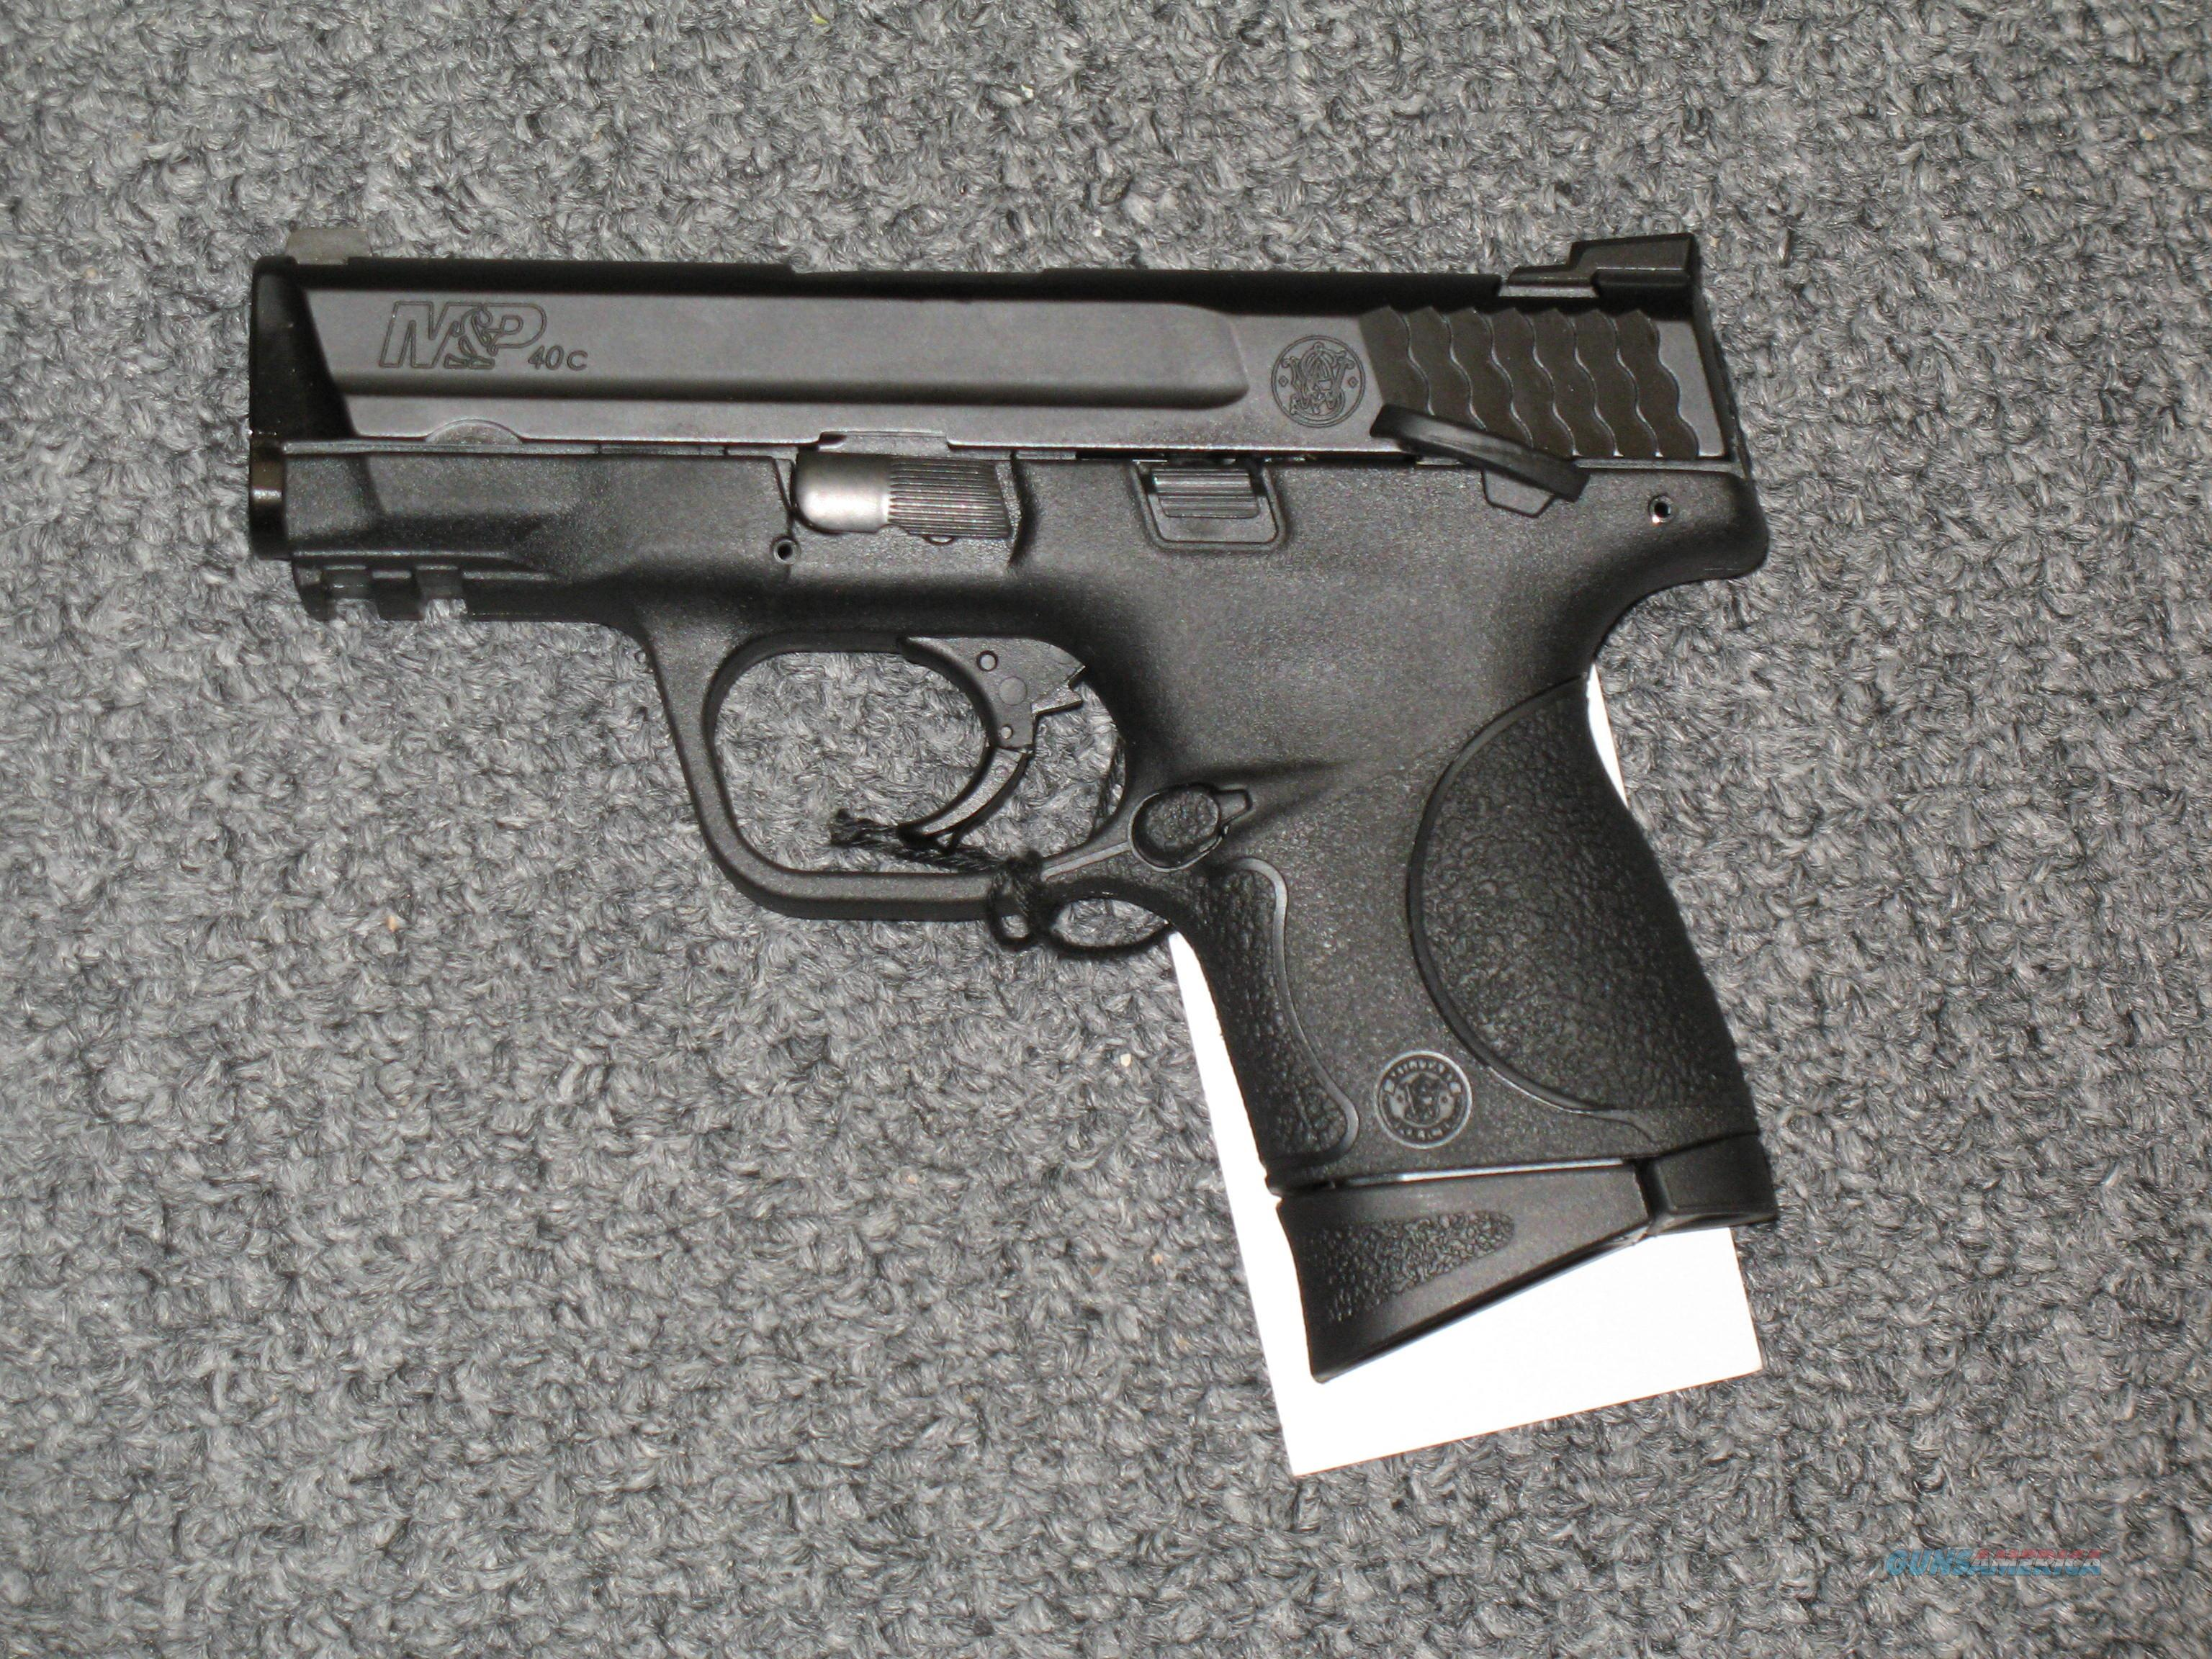 M&P 40c w/thumb safety  Guns > Pistols > Smith & Wesson Pistols - Autos > Polymer Frame